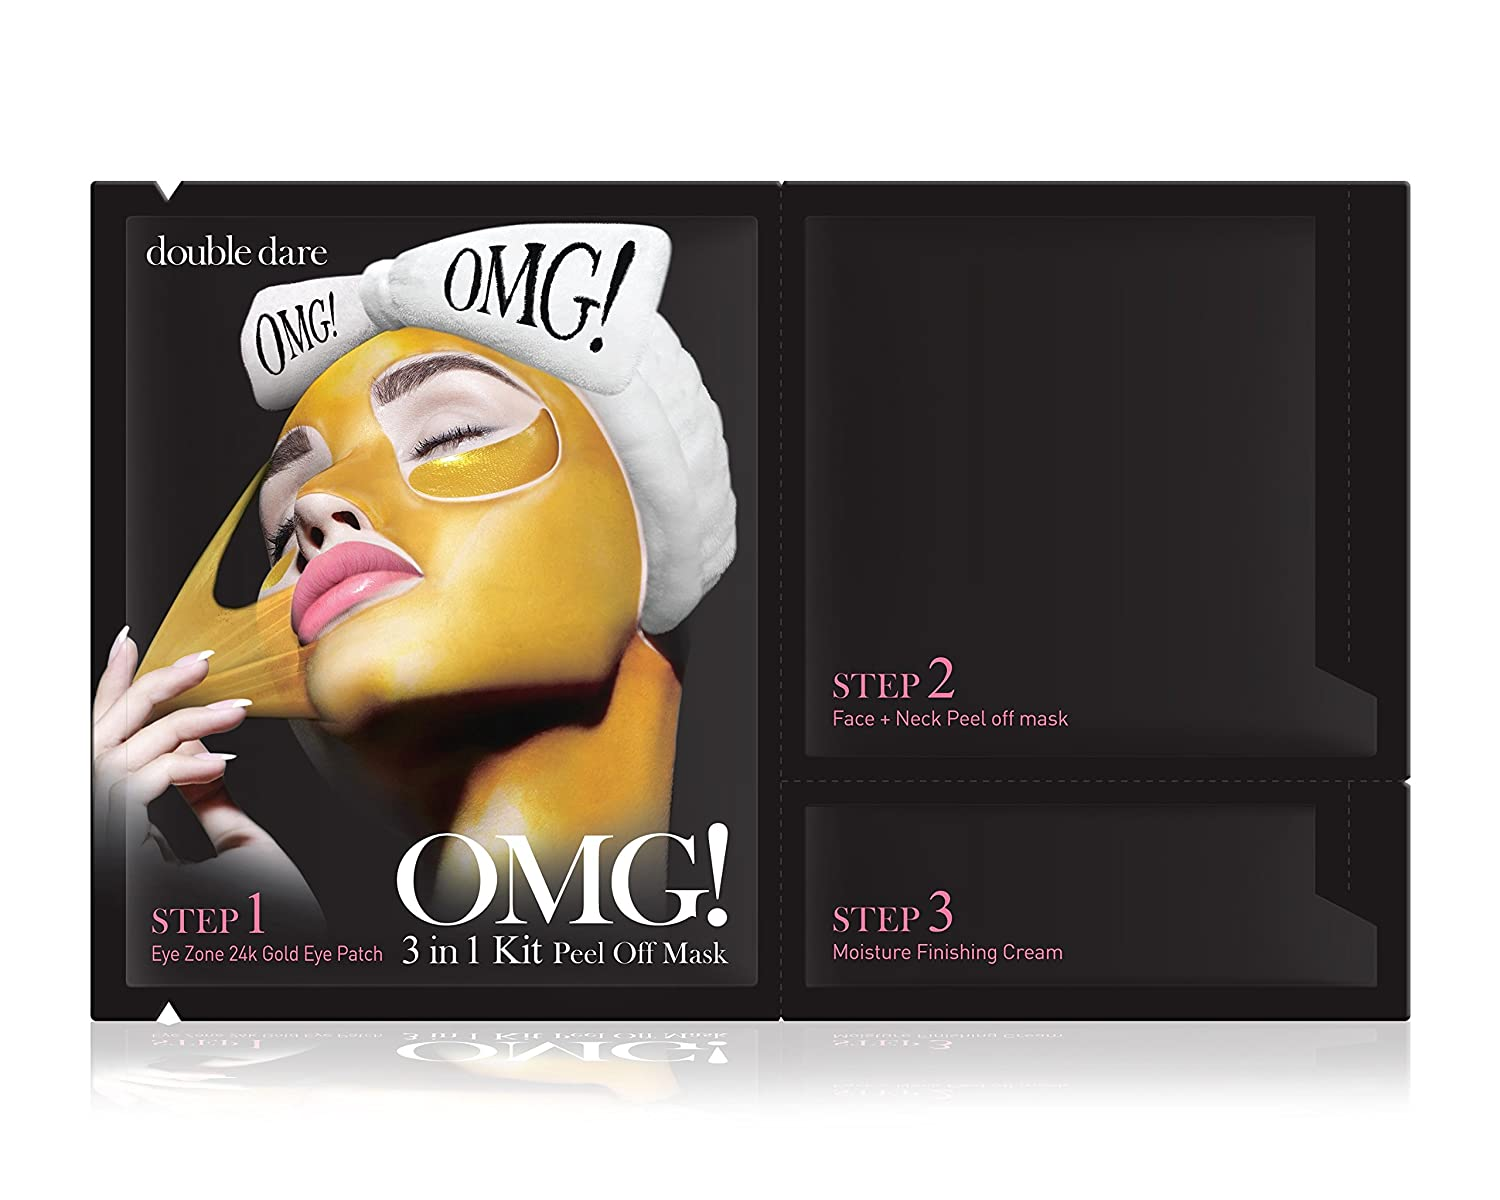 double dare OMG 3in1 Kit Peel off Mask – Anti-aging and Deep Cleansing with 24k Gold 5 Sheets